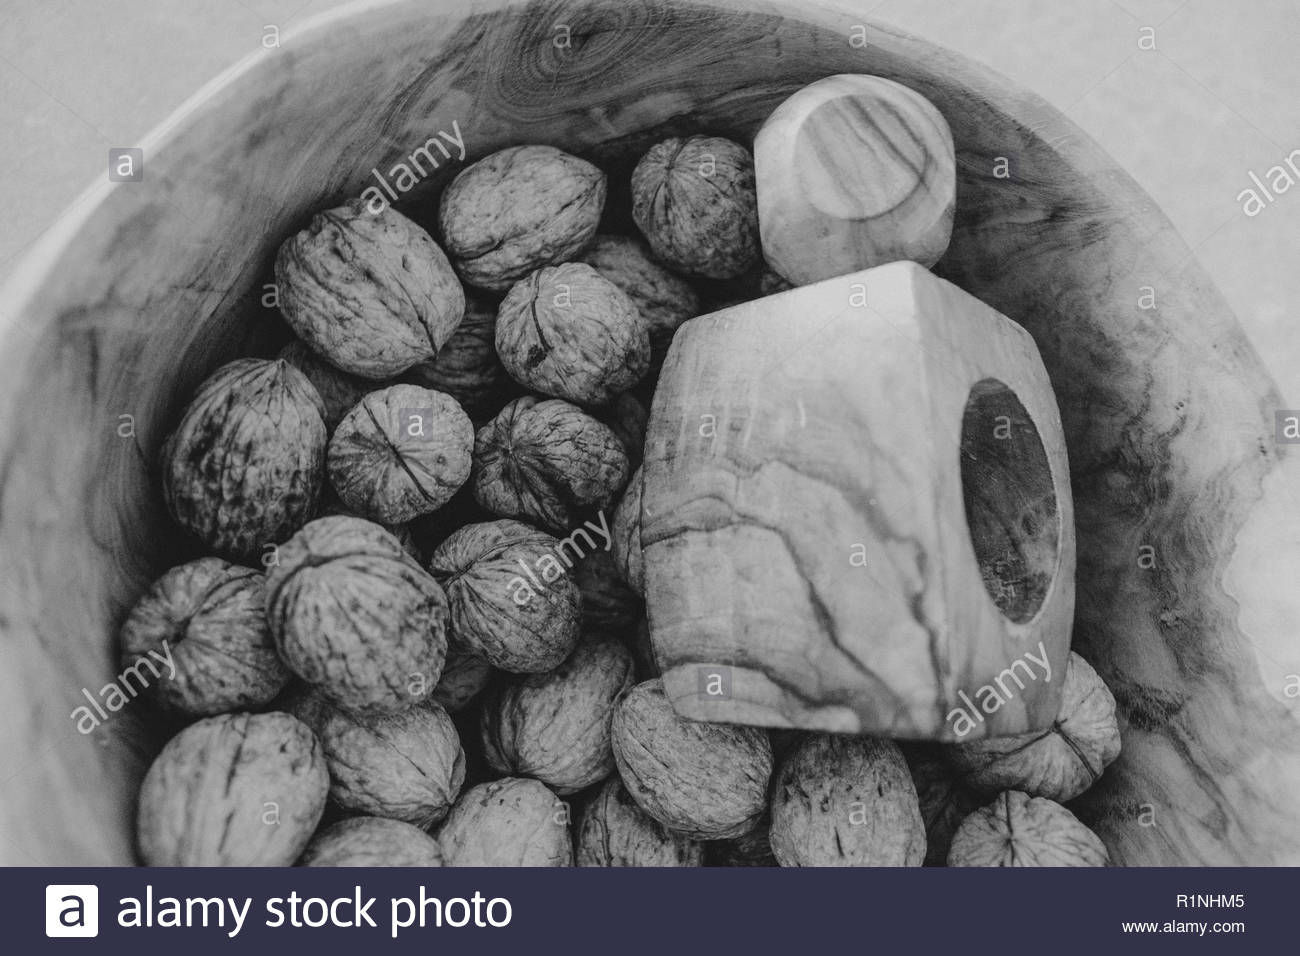 walnuts with wooden opener in an artisan bowl - Stock Image